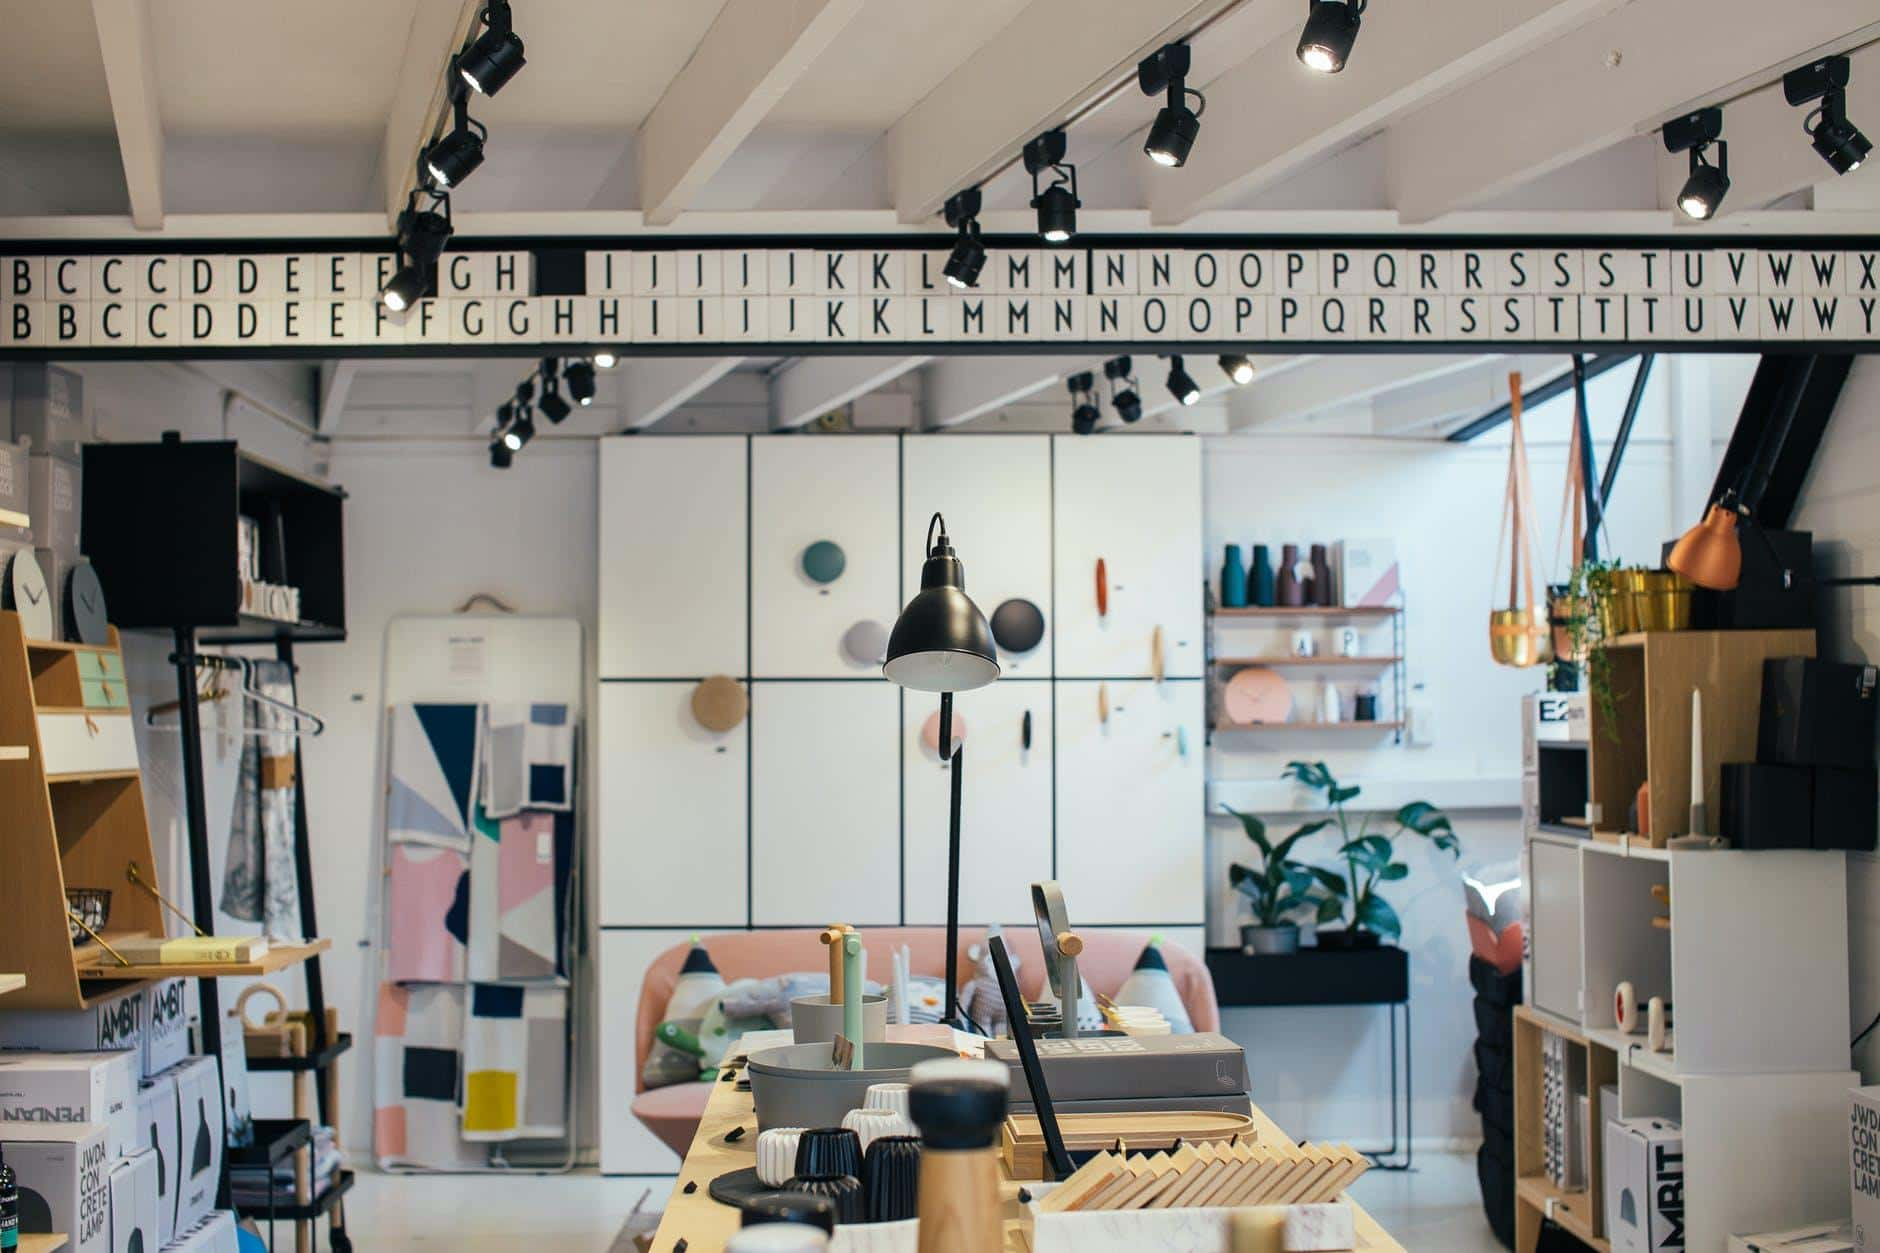 Home Improvements: How To Handle A Chaotic Garage. Contemporary interior finish with balck swivel lamps on metal guides and with storage cabinet